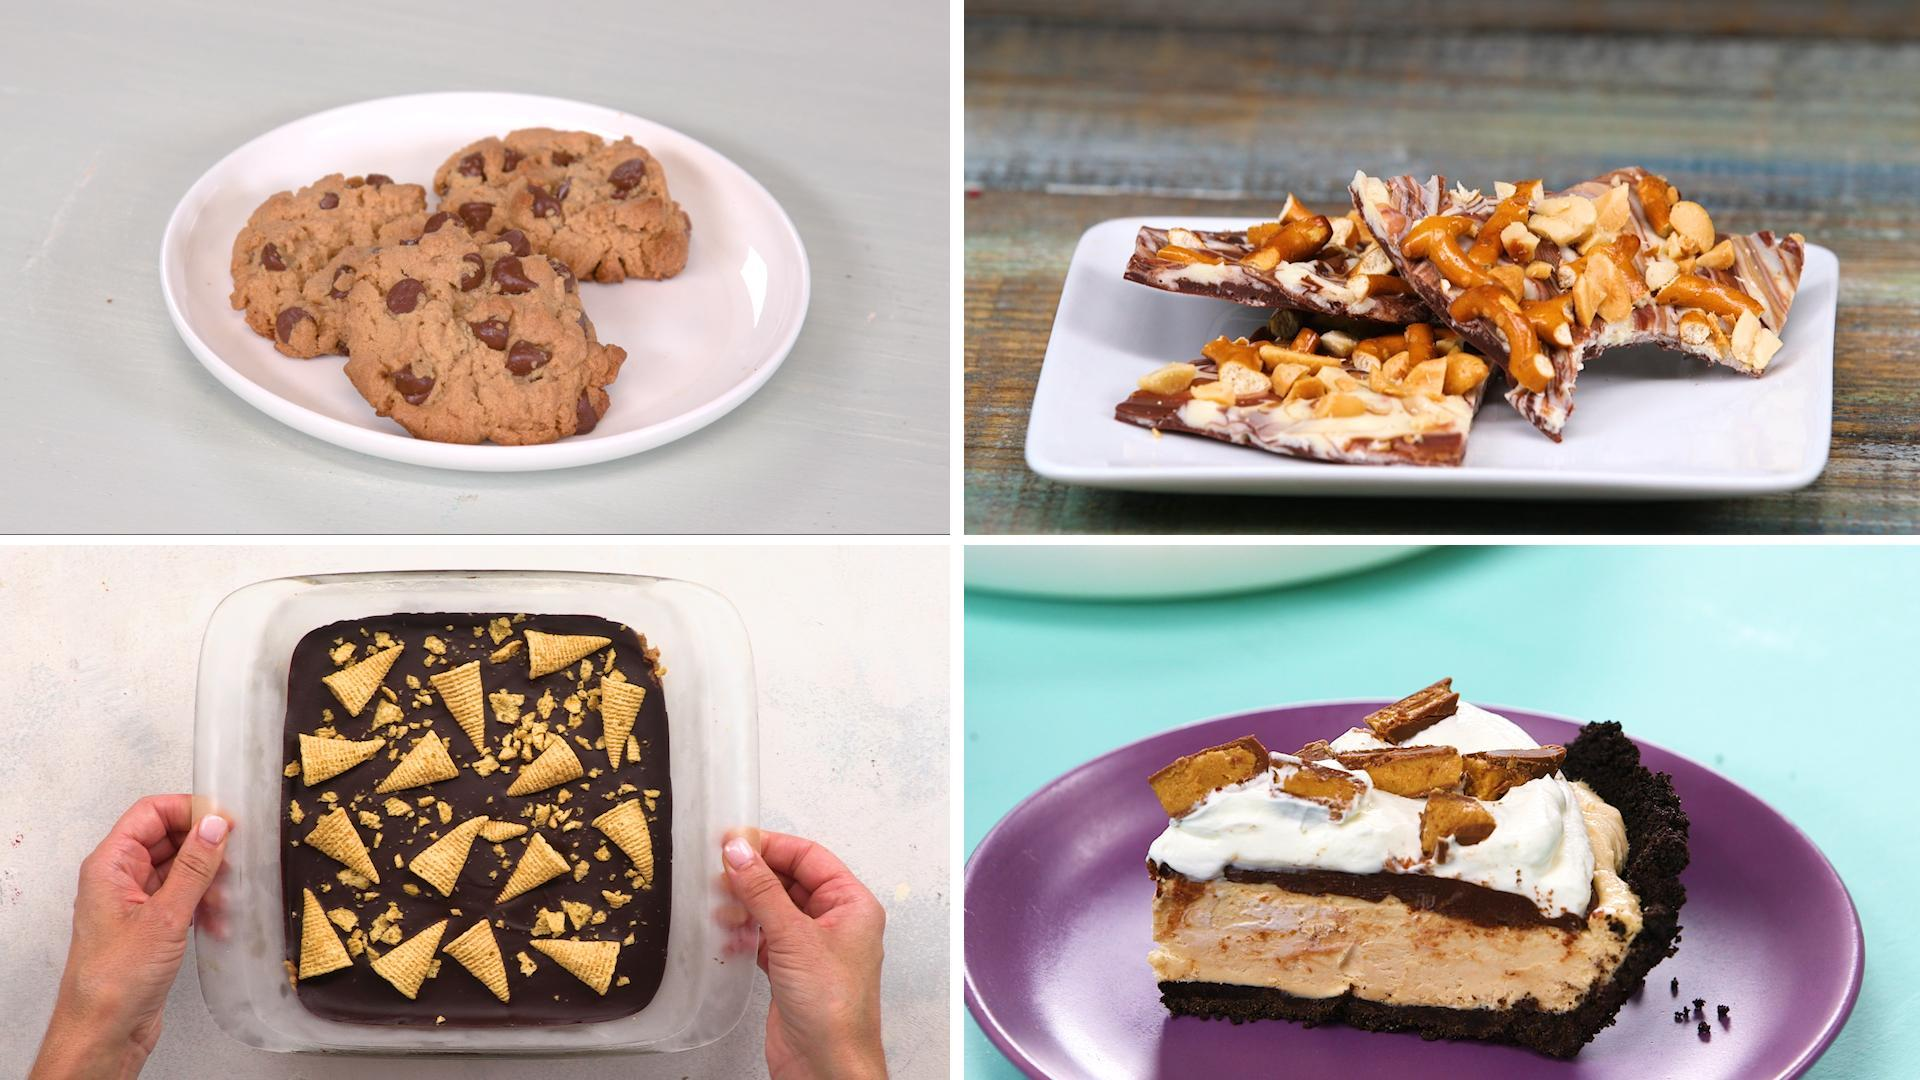 How to Make 5 Peanut Butter and Chocolate Recipes